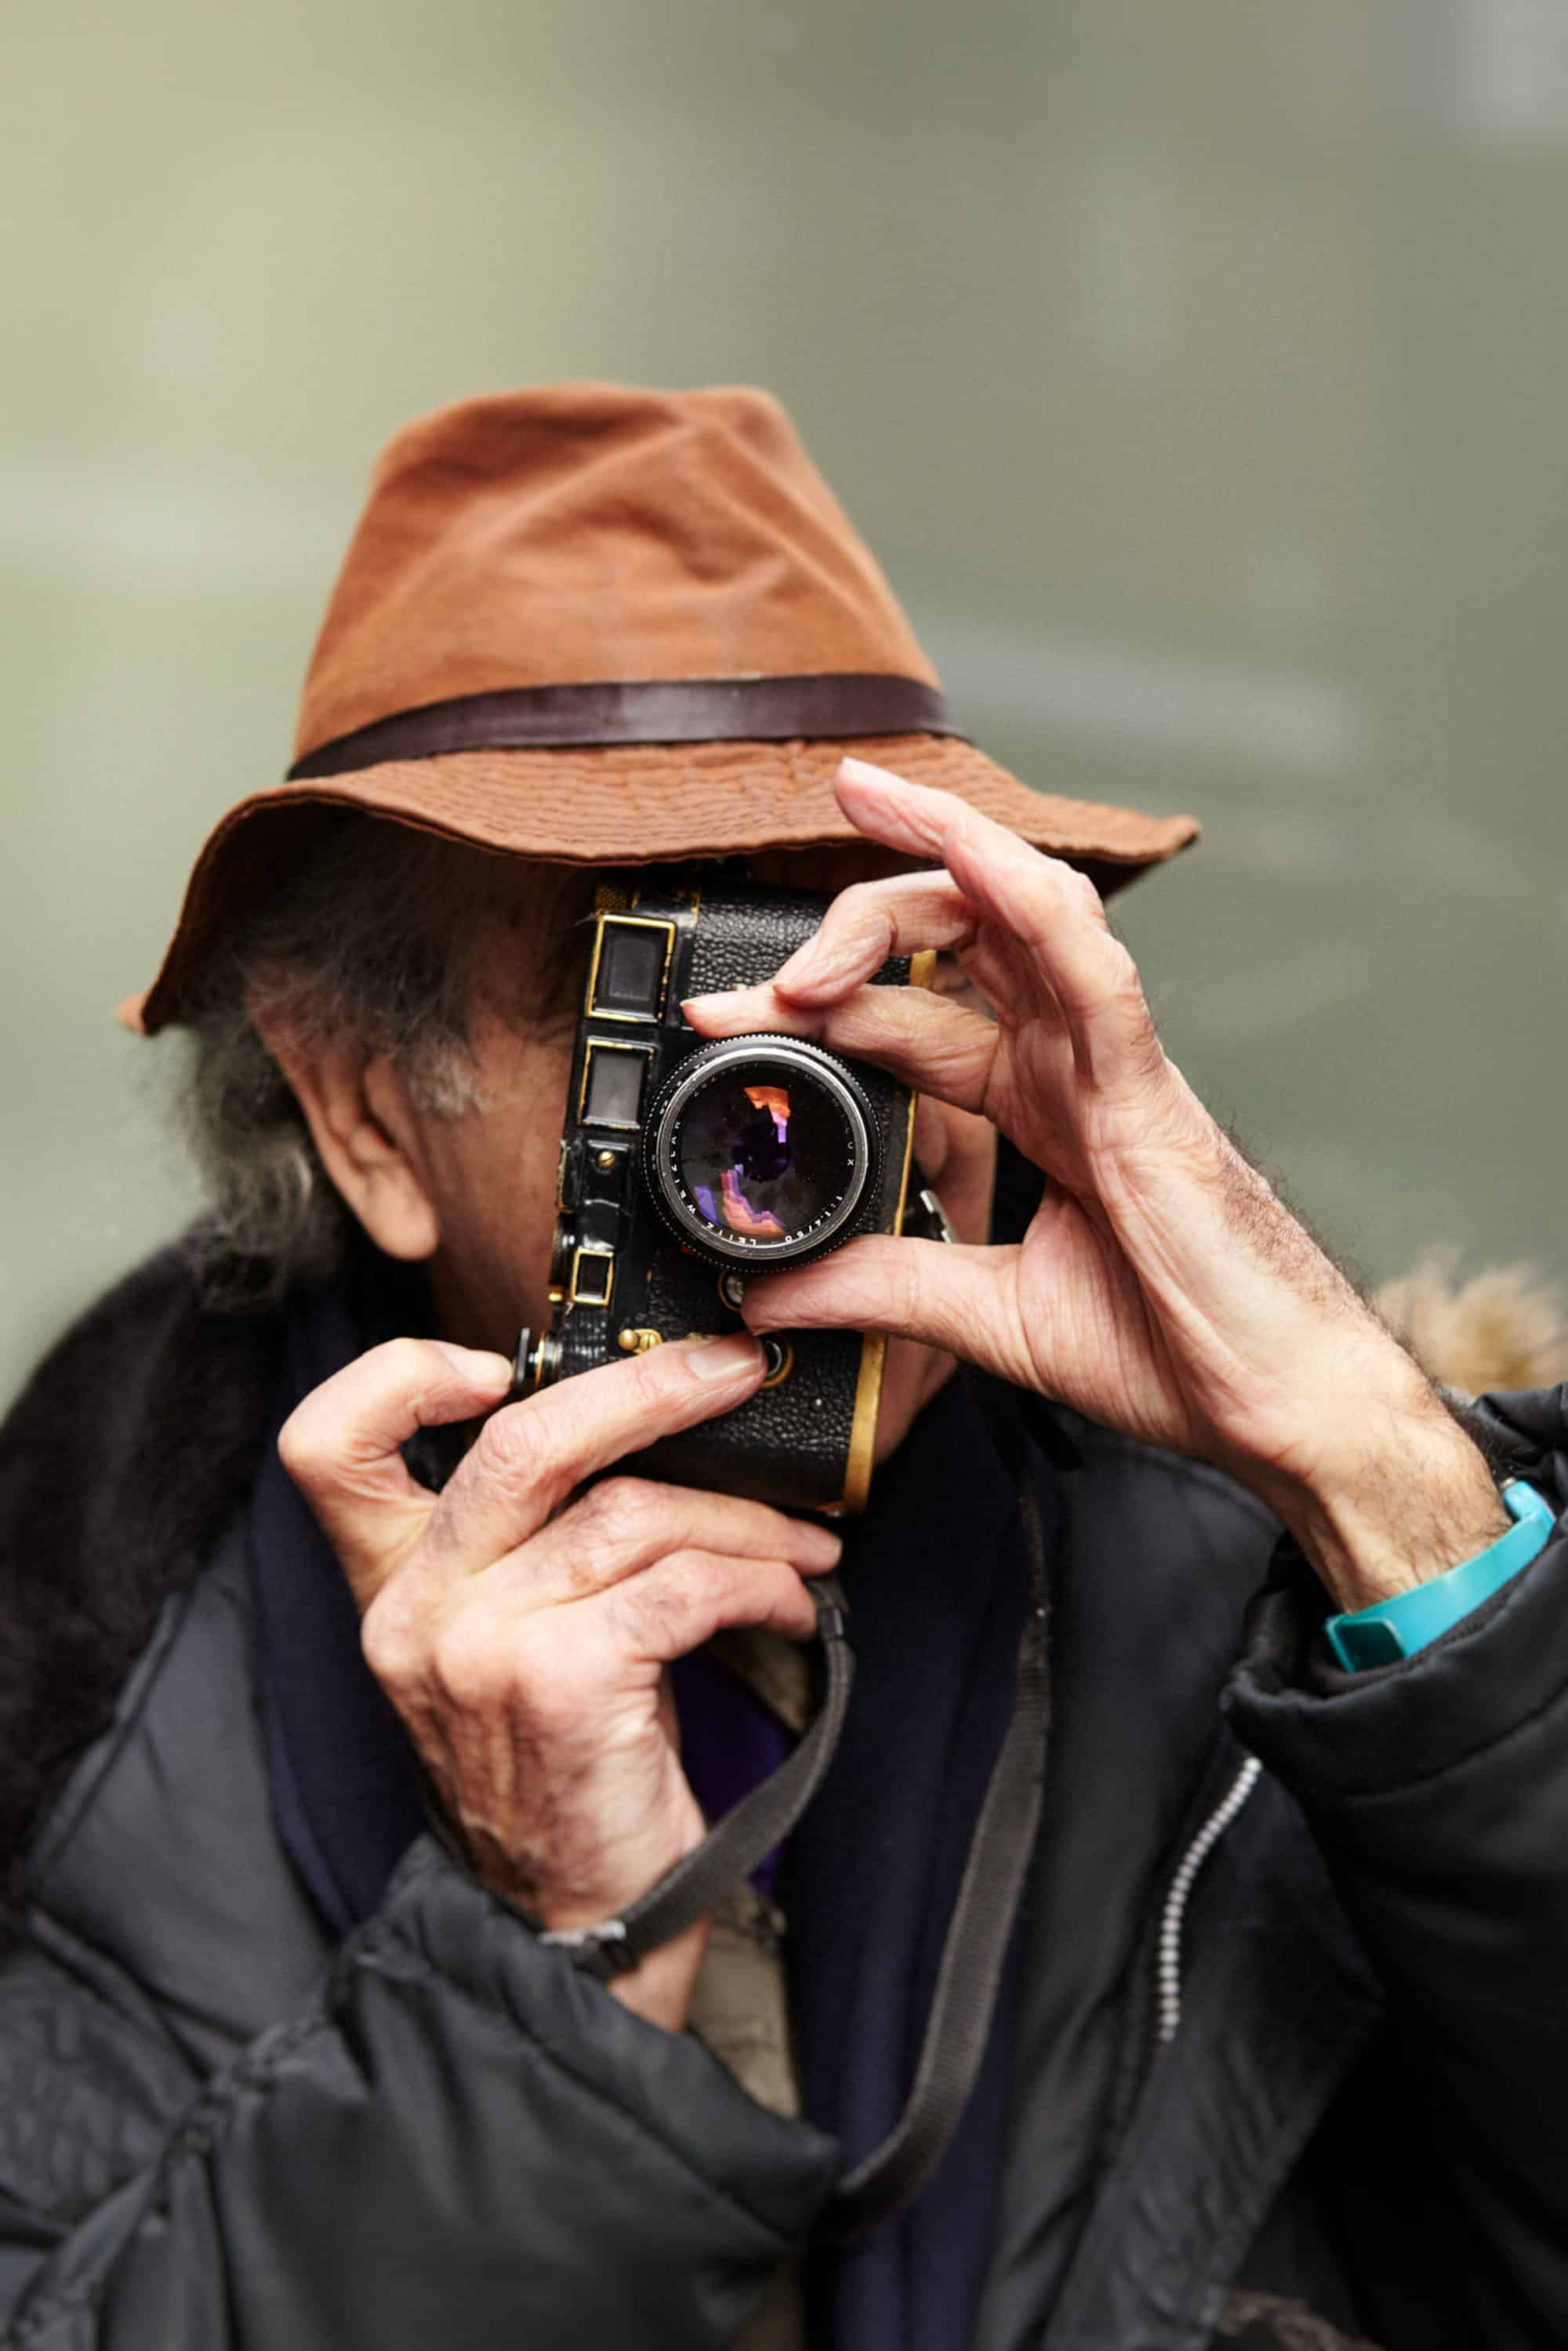 """Action portrait of Neil Libbert taking a picture with an old Leica rangefinder camera. His hands elegantly operating the controls. Blurry out of focus green background."""